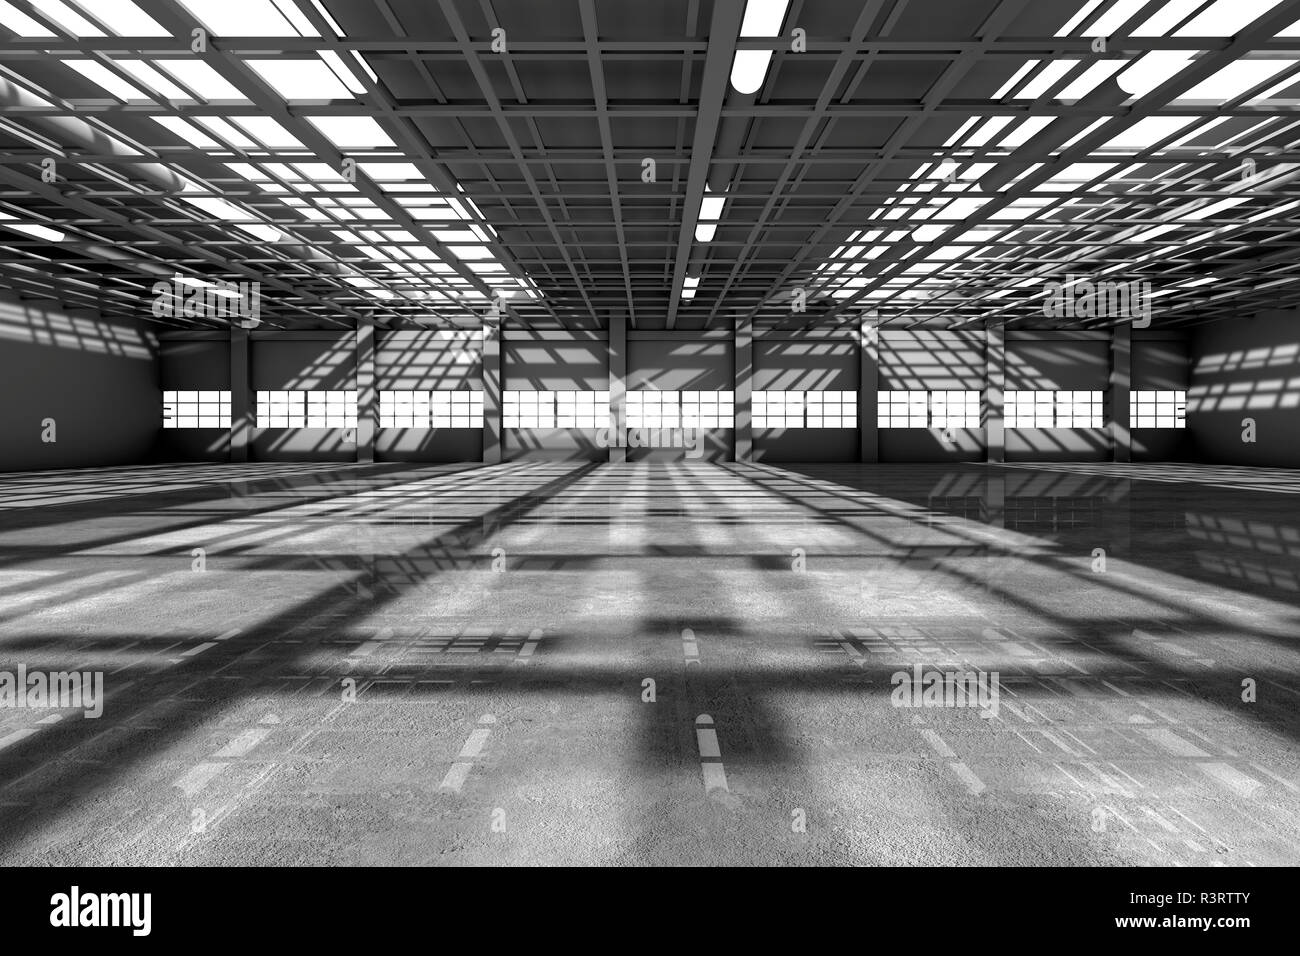 Architecture visualization of an empty warehouse, 3D Rendering - Stock Image